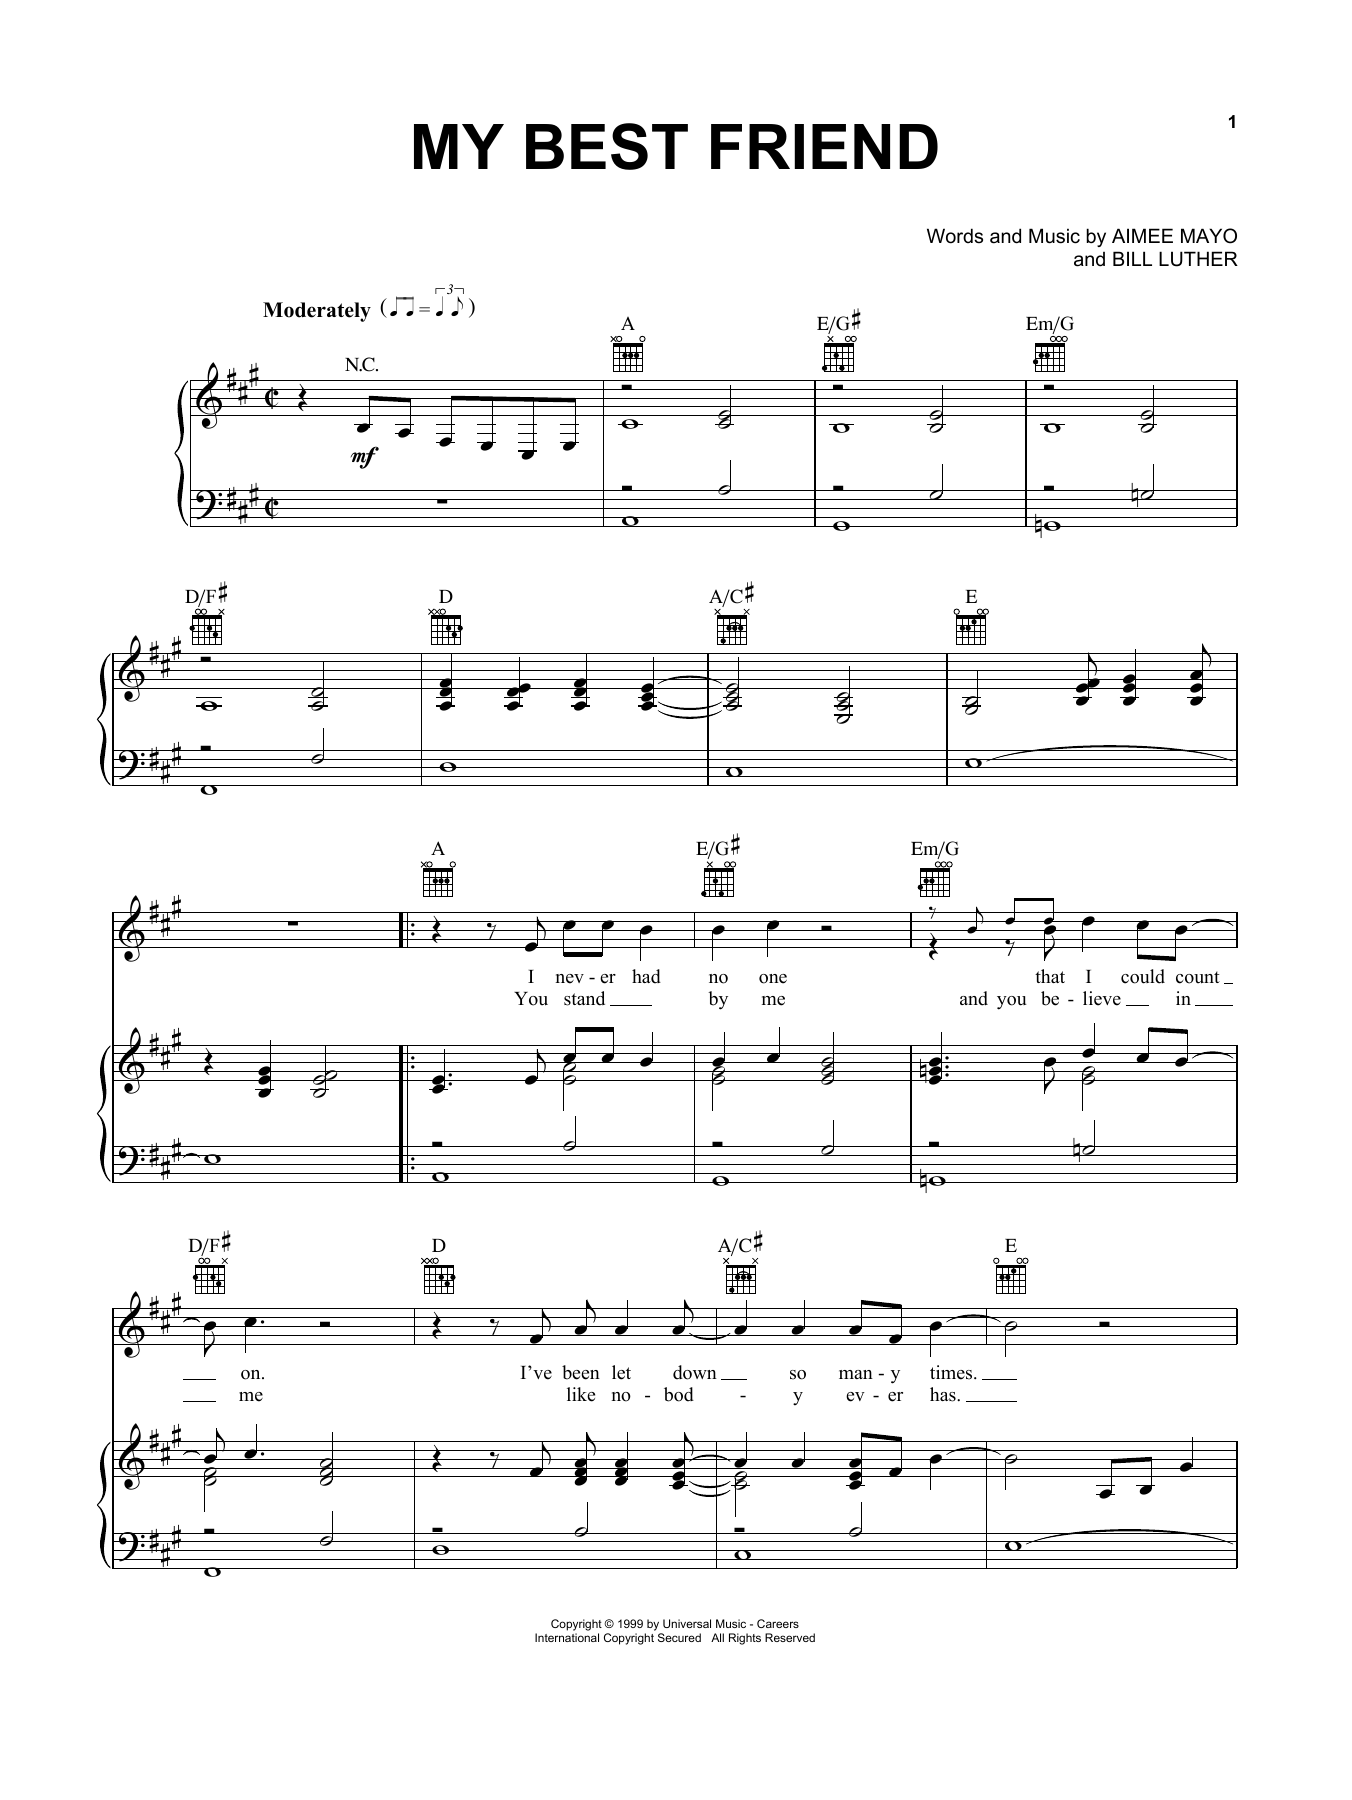 My Best Friend Sheet Music